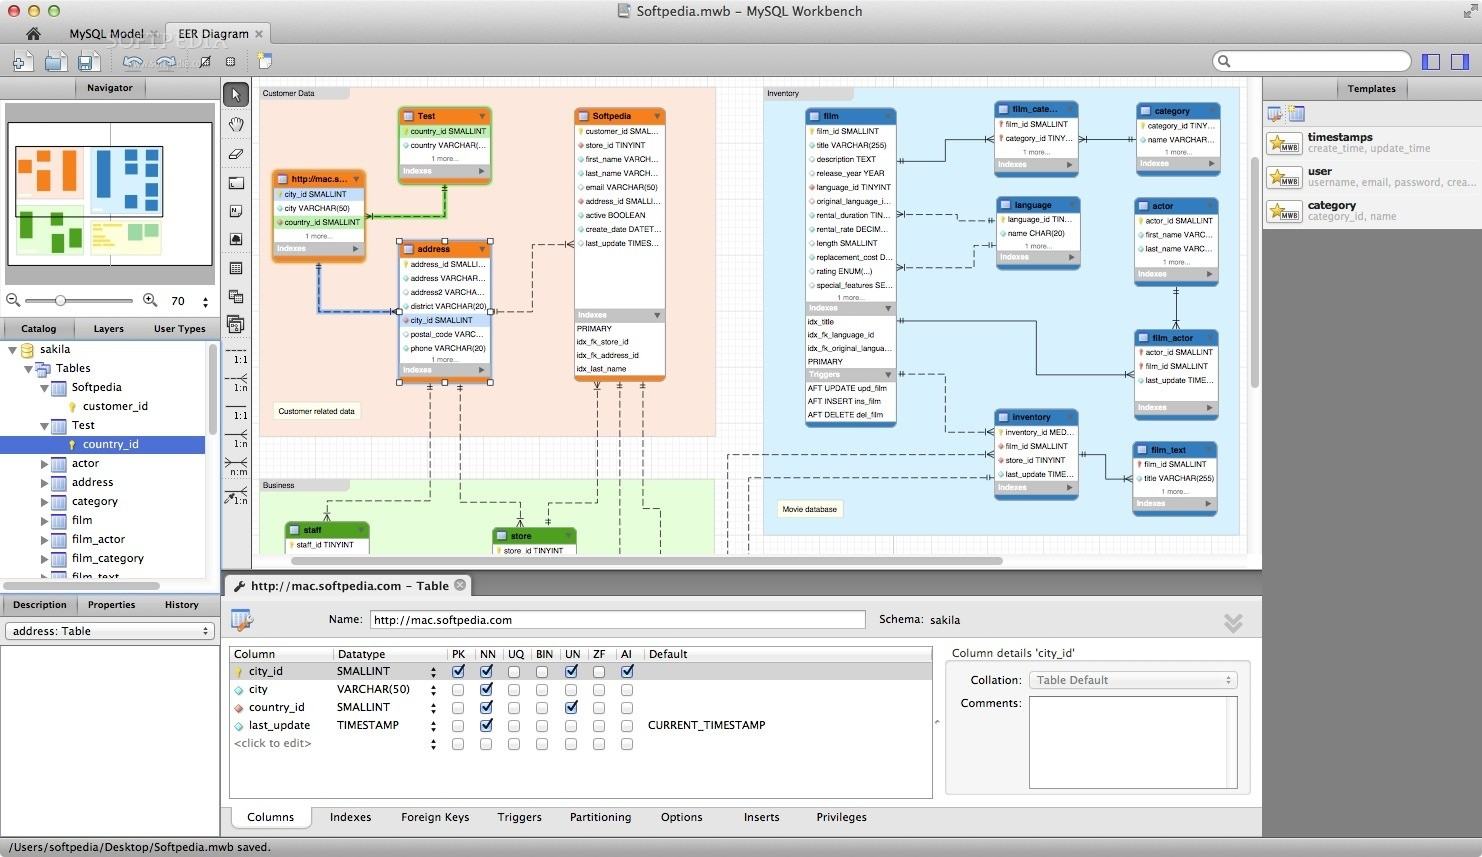 MySQL Workbench Mac 8 0 17 - Download